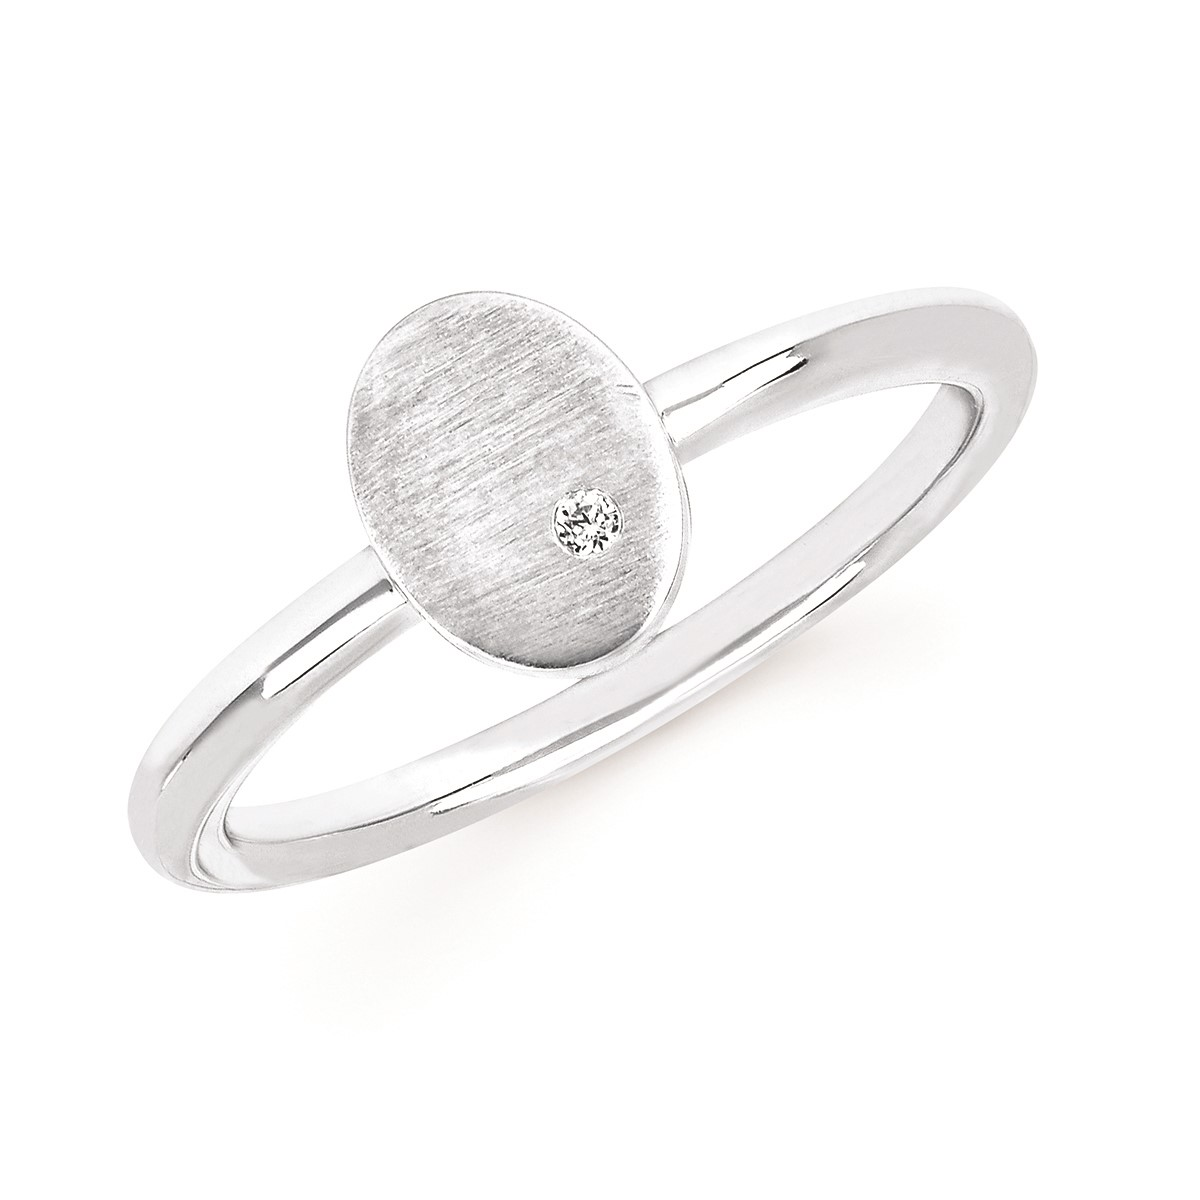 Sterling Silver Ring by Ostbye